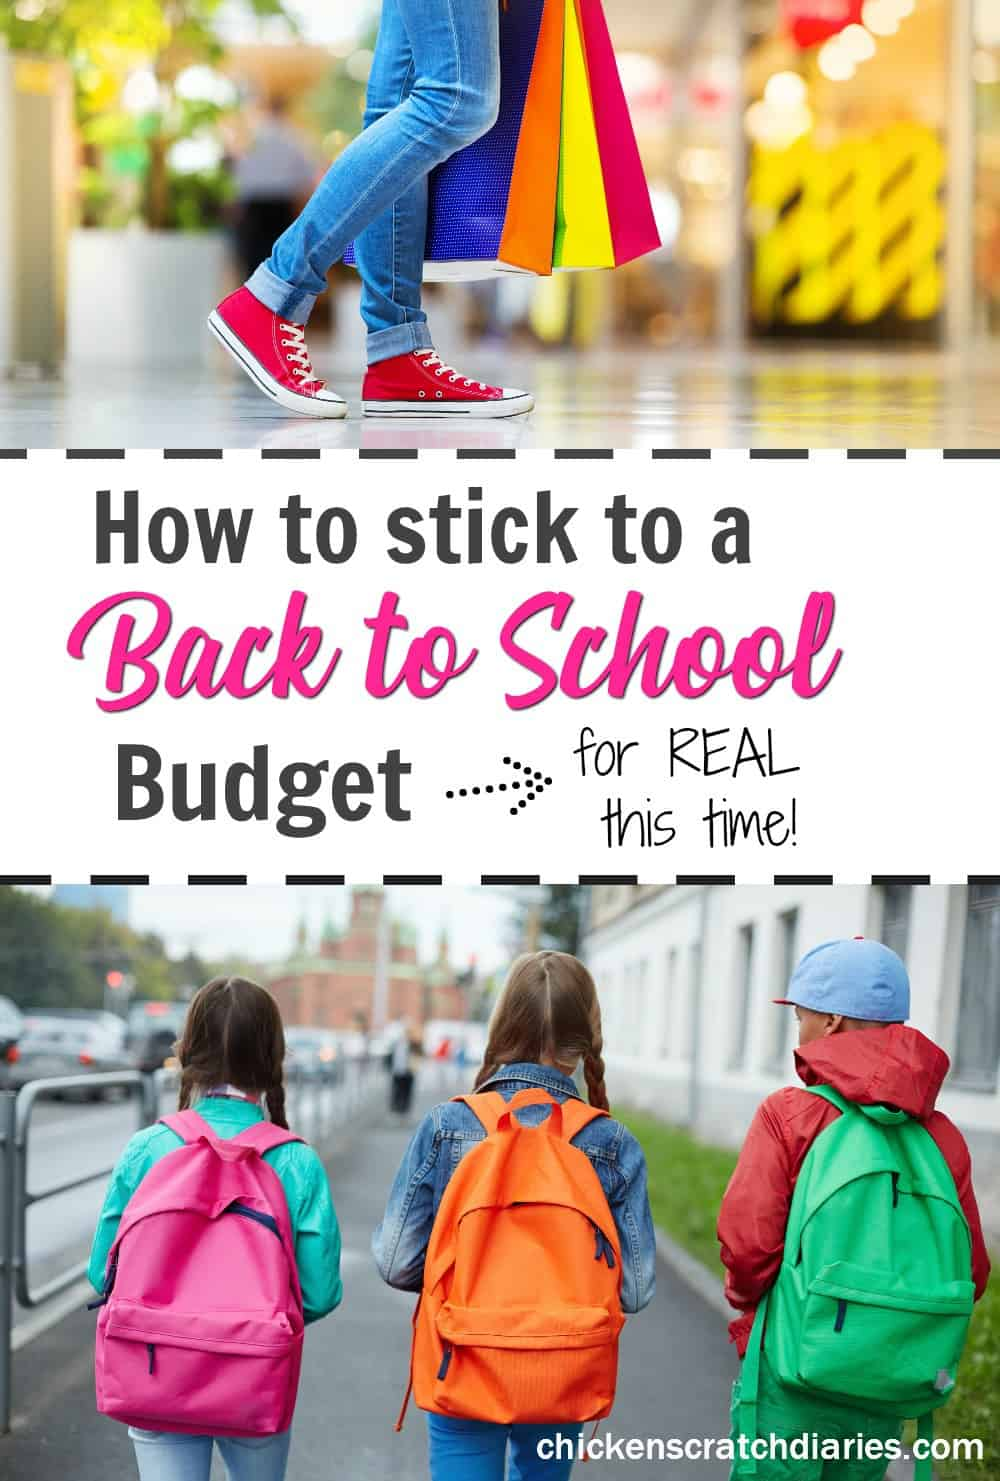 Back to School Hacks: from school supplies to clothing - awesome tips to help you save more on everything you need! #BackToSchool #Budgeting #Family #School #Shopping